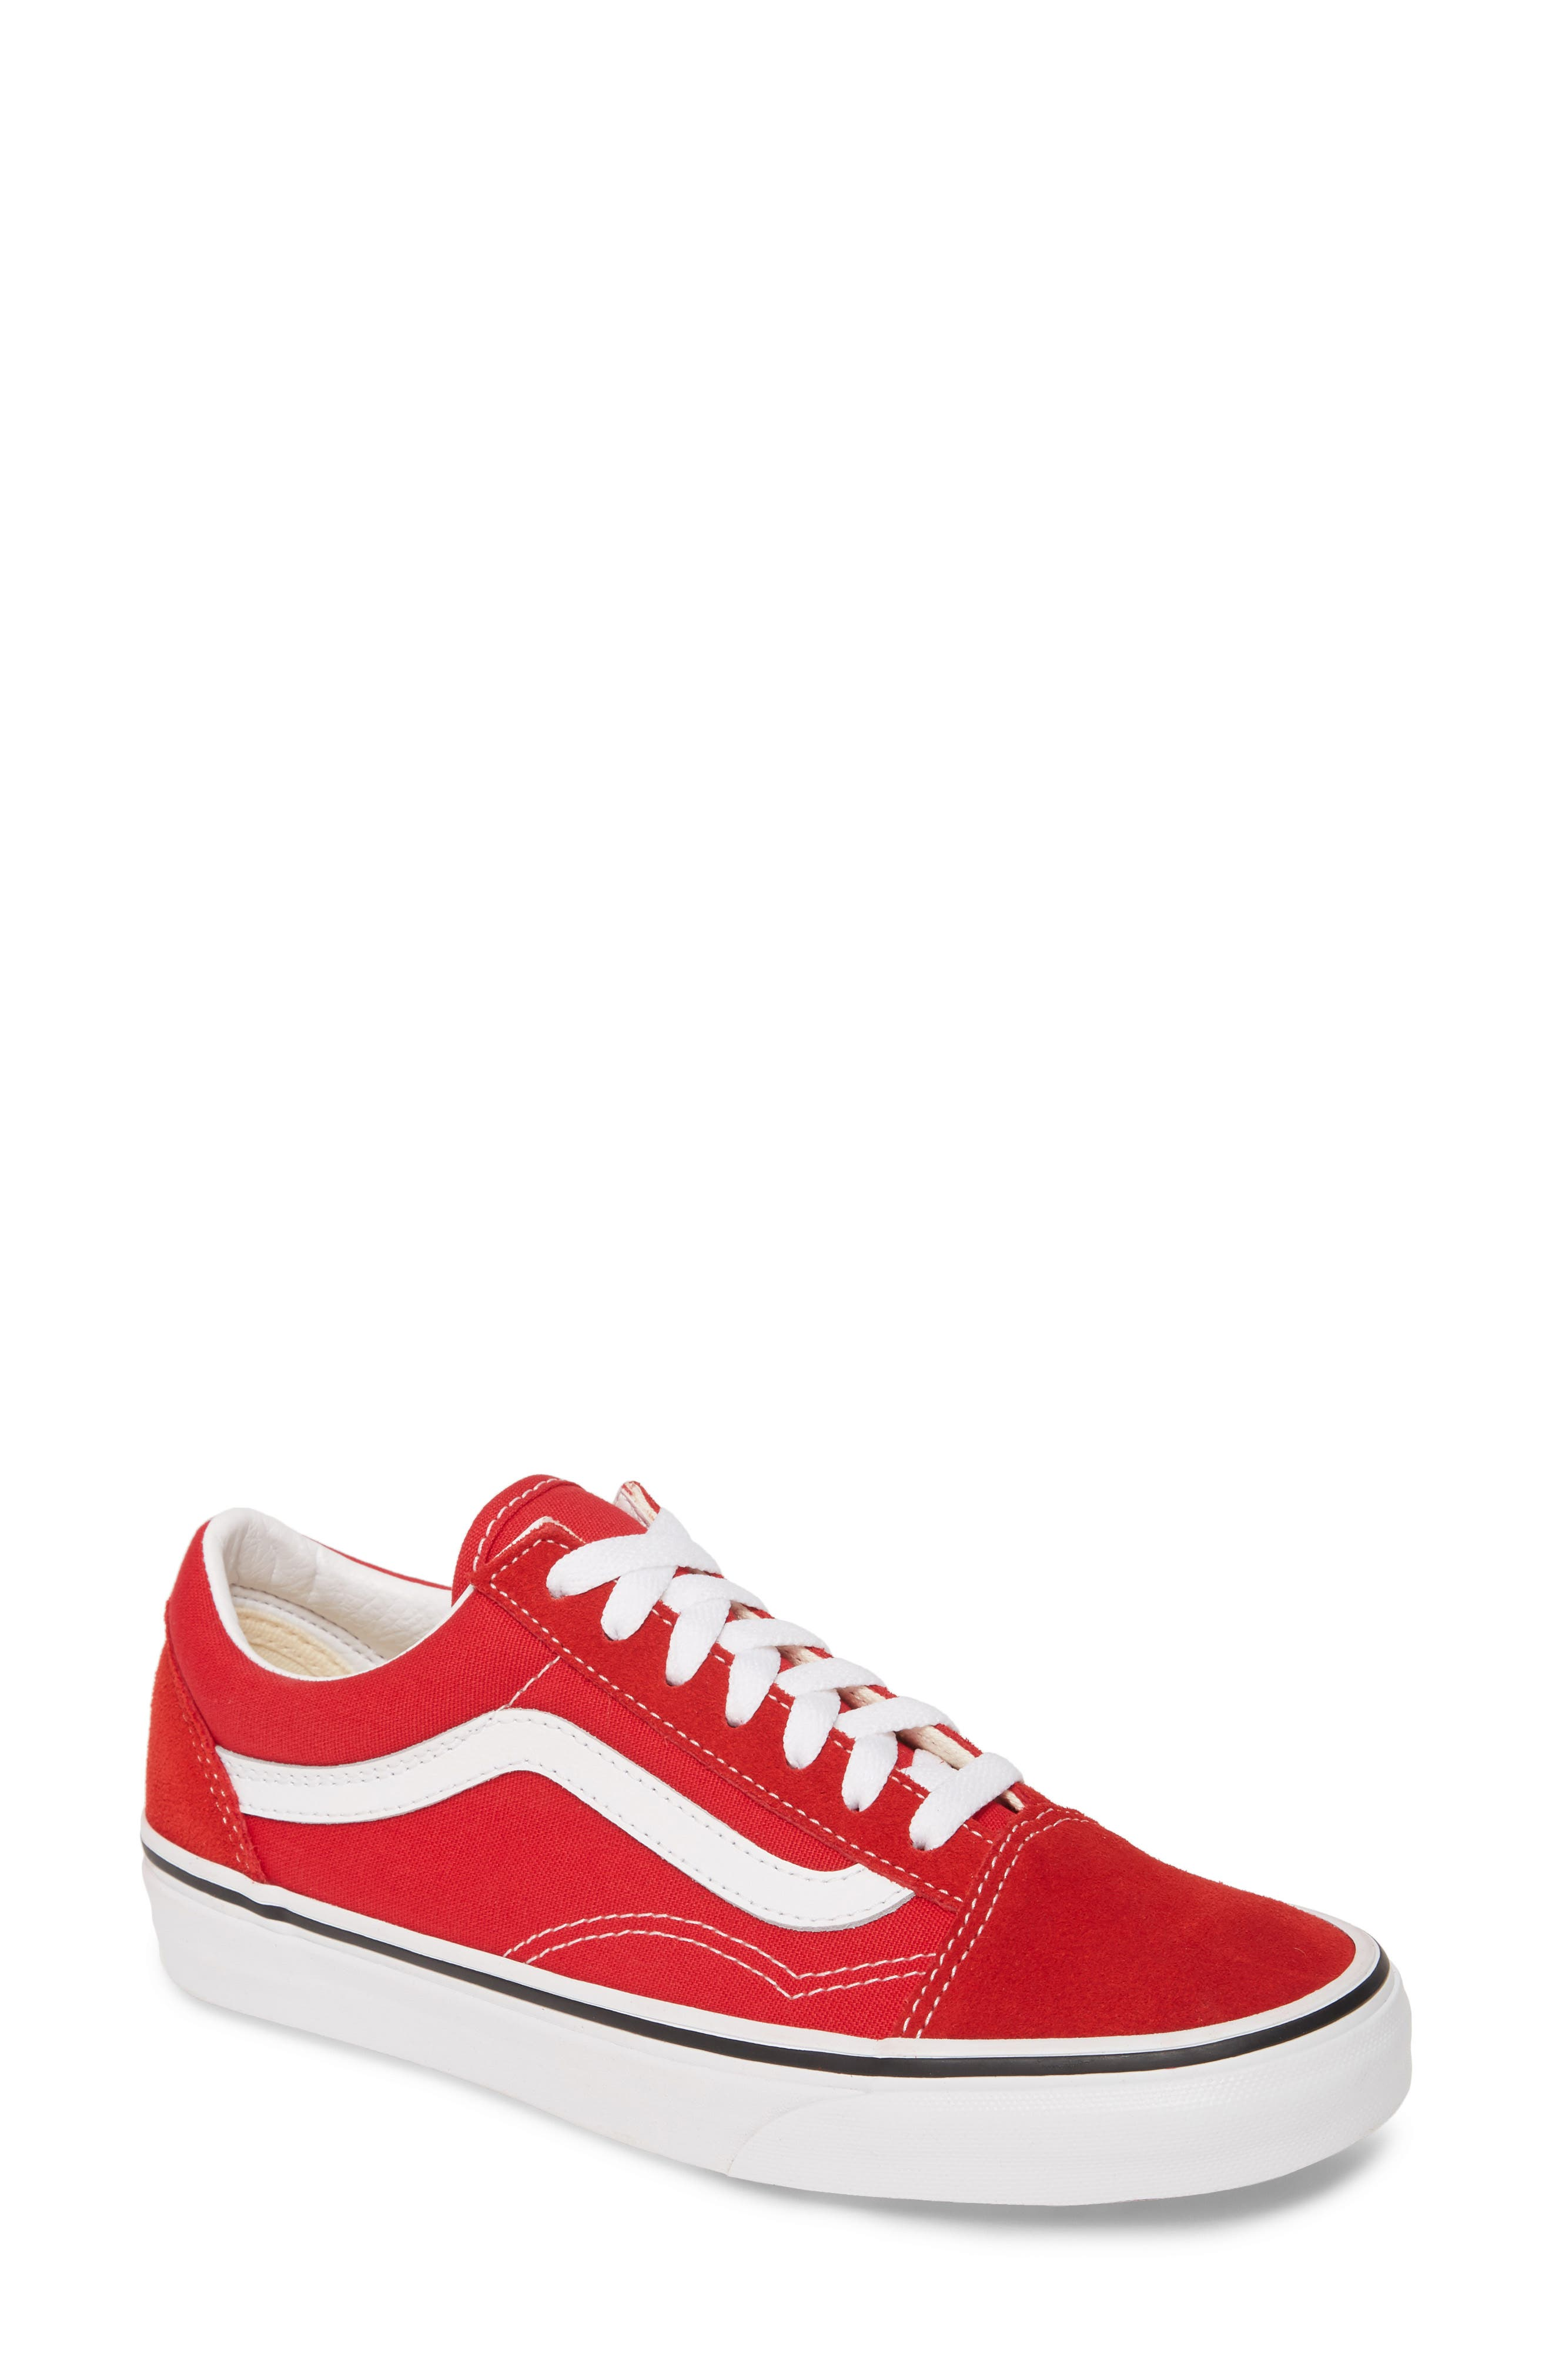 womens red athletic shoes